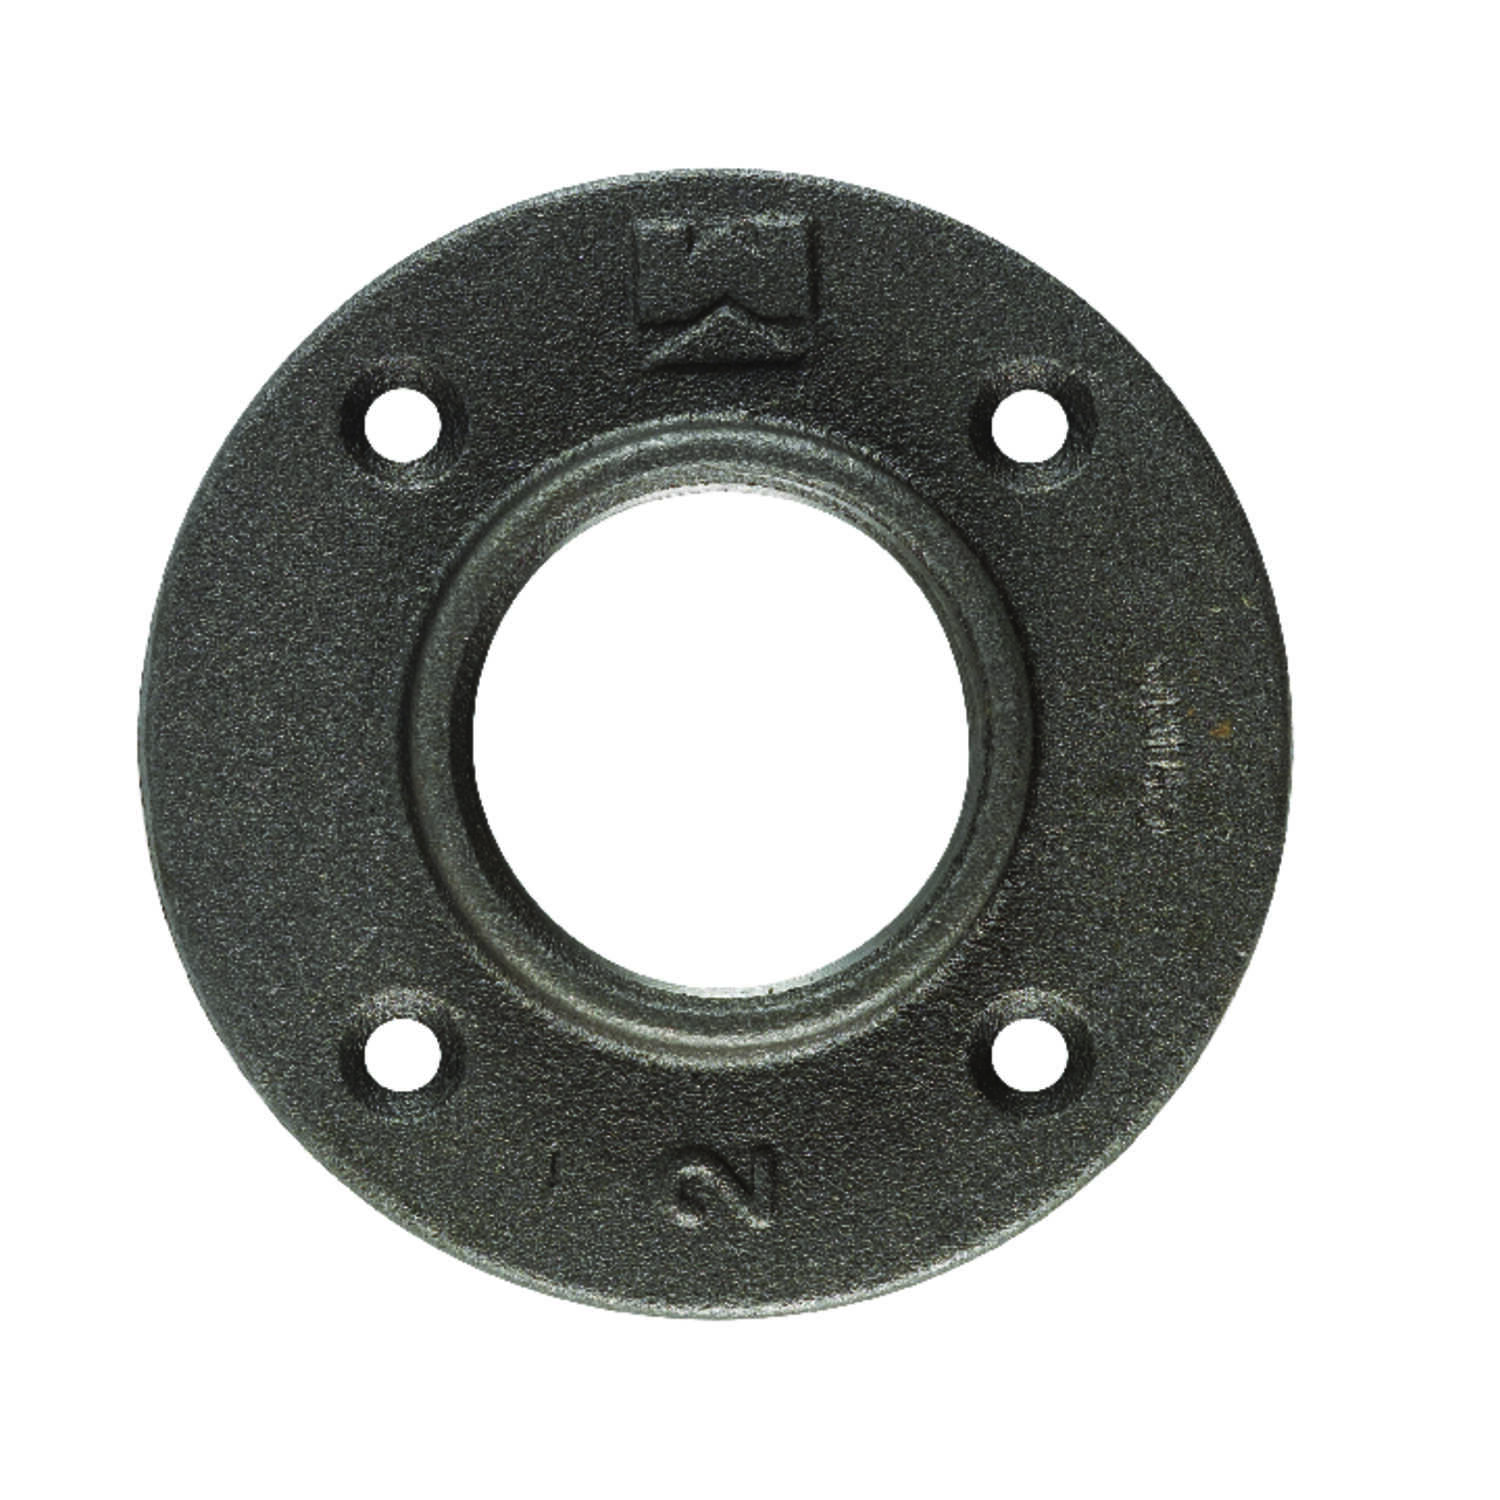 B & K 2 in FPT Black Malleable Iron Floor Flange Ace Hardware